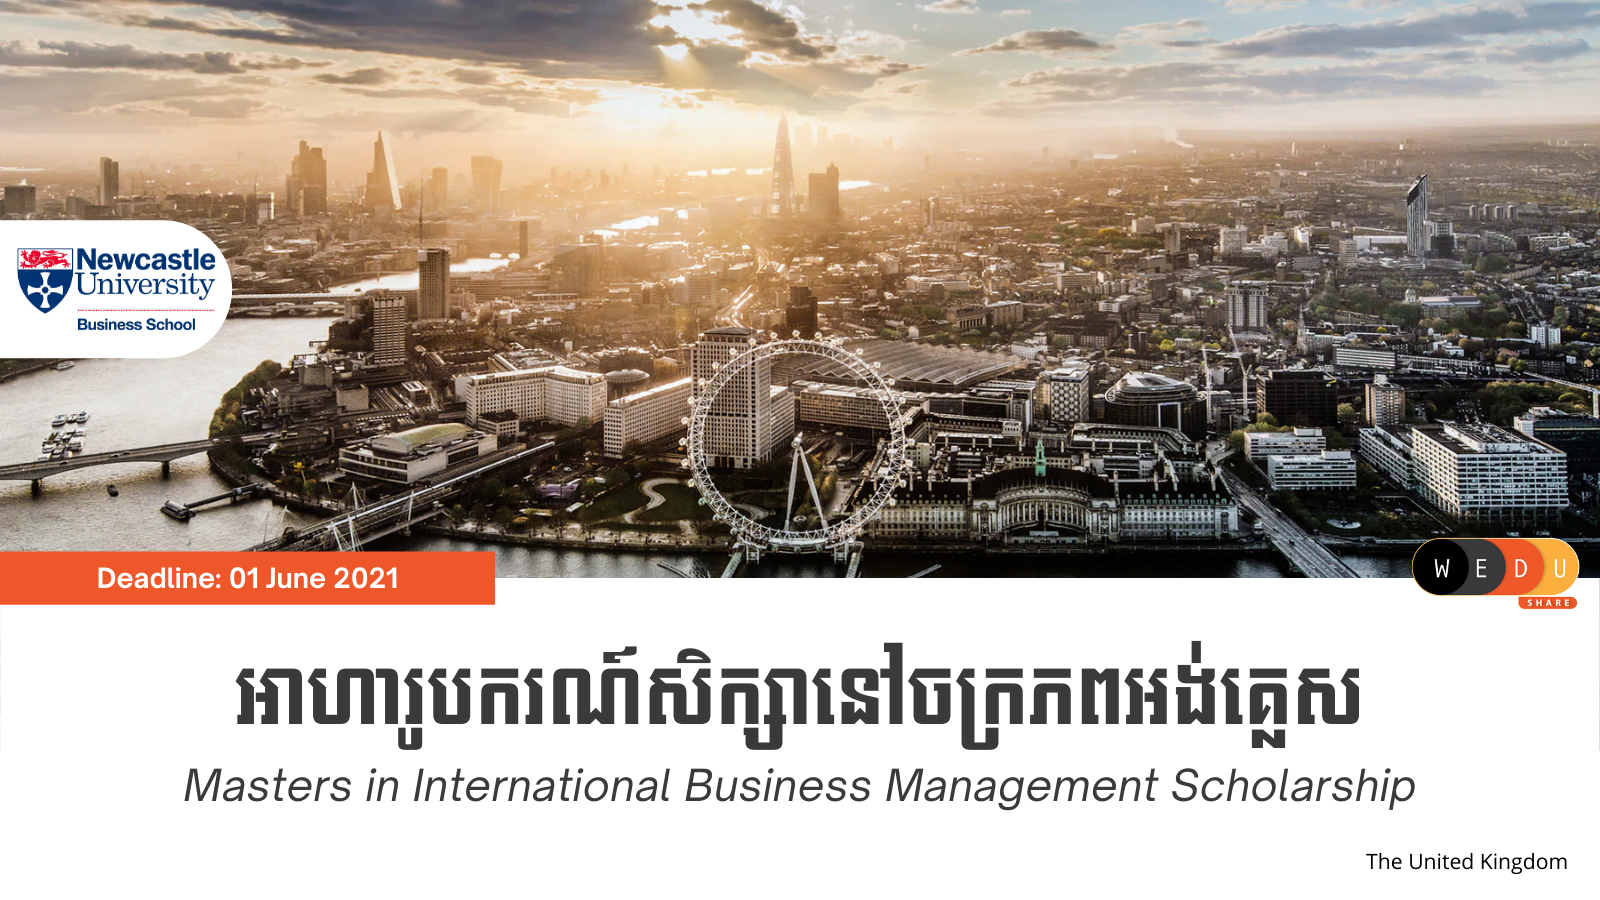 Masters in International Business Management Scholarship